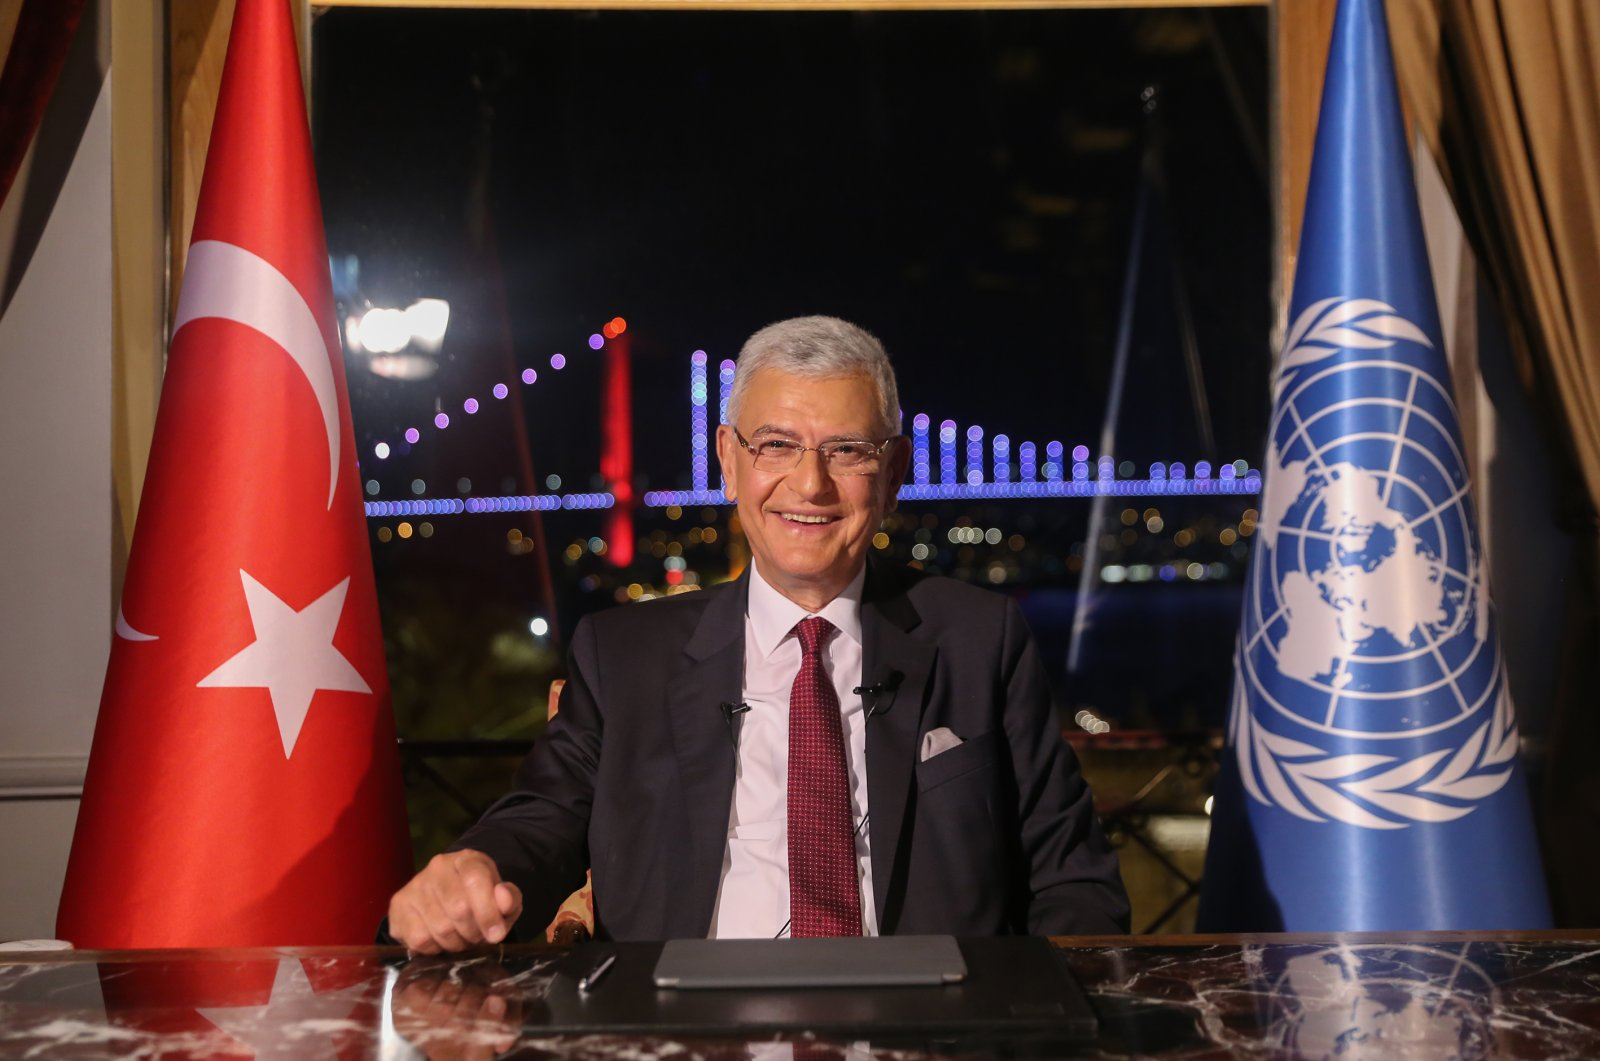 With Bozkır's election as UNGA president, Turkey can raise its global standing